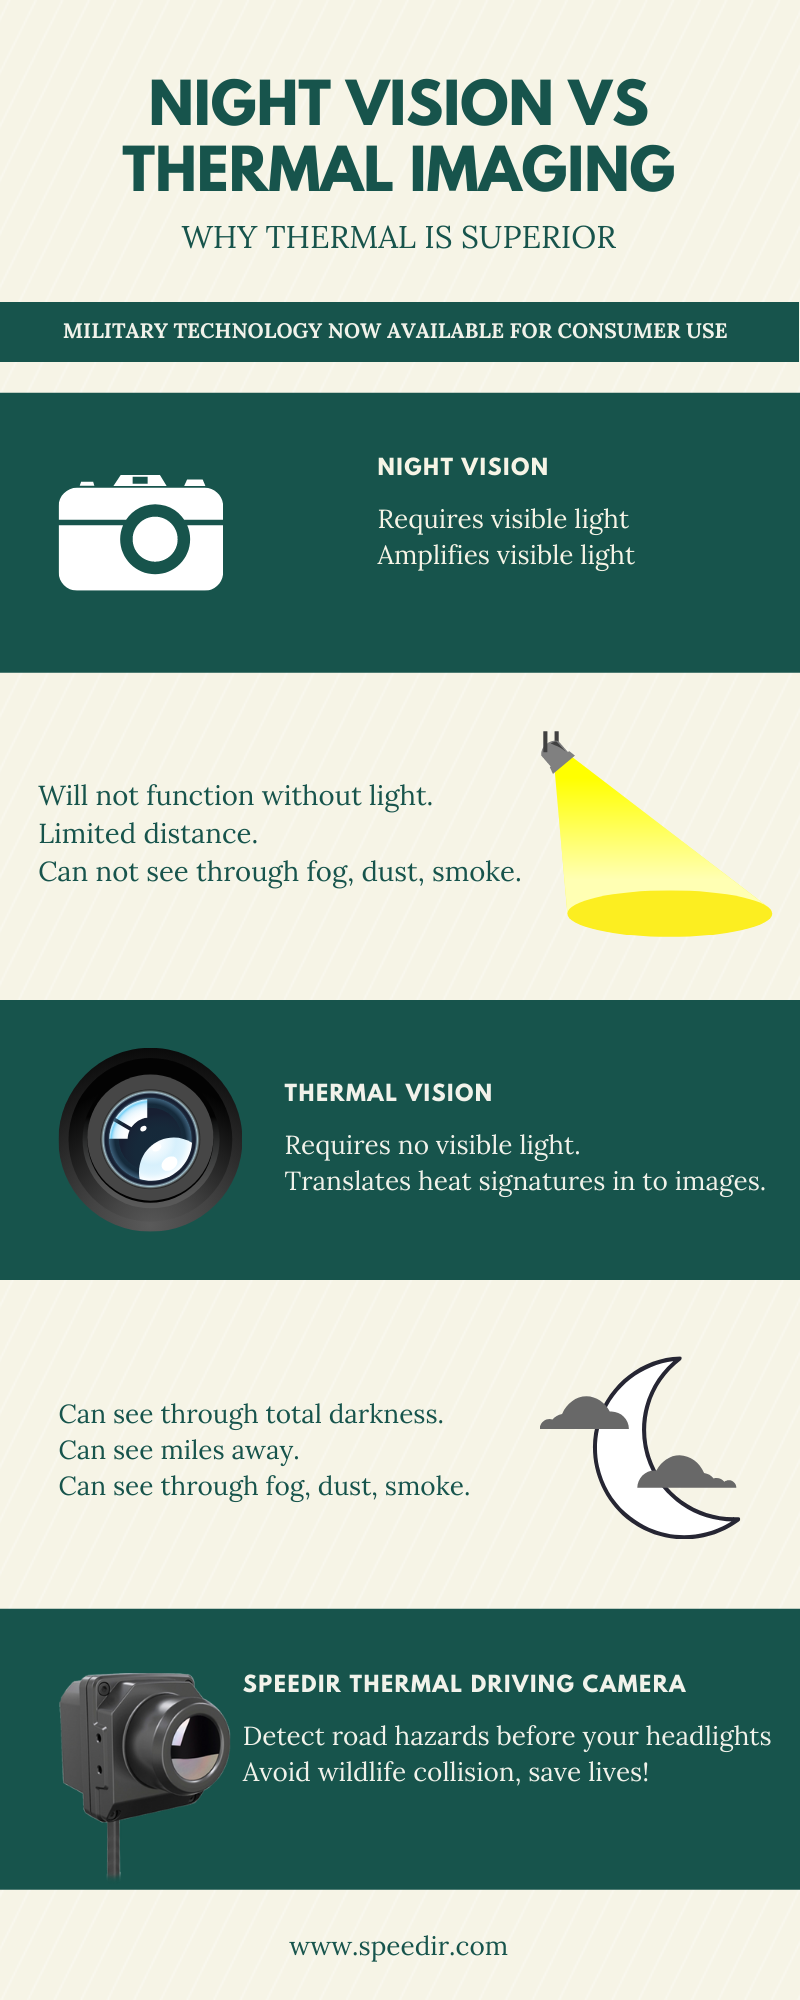 night vision vs thermal imaging explained infographic